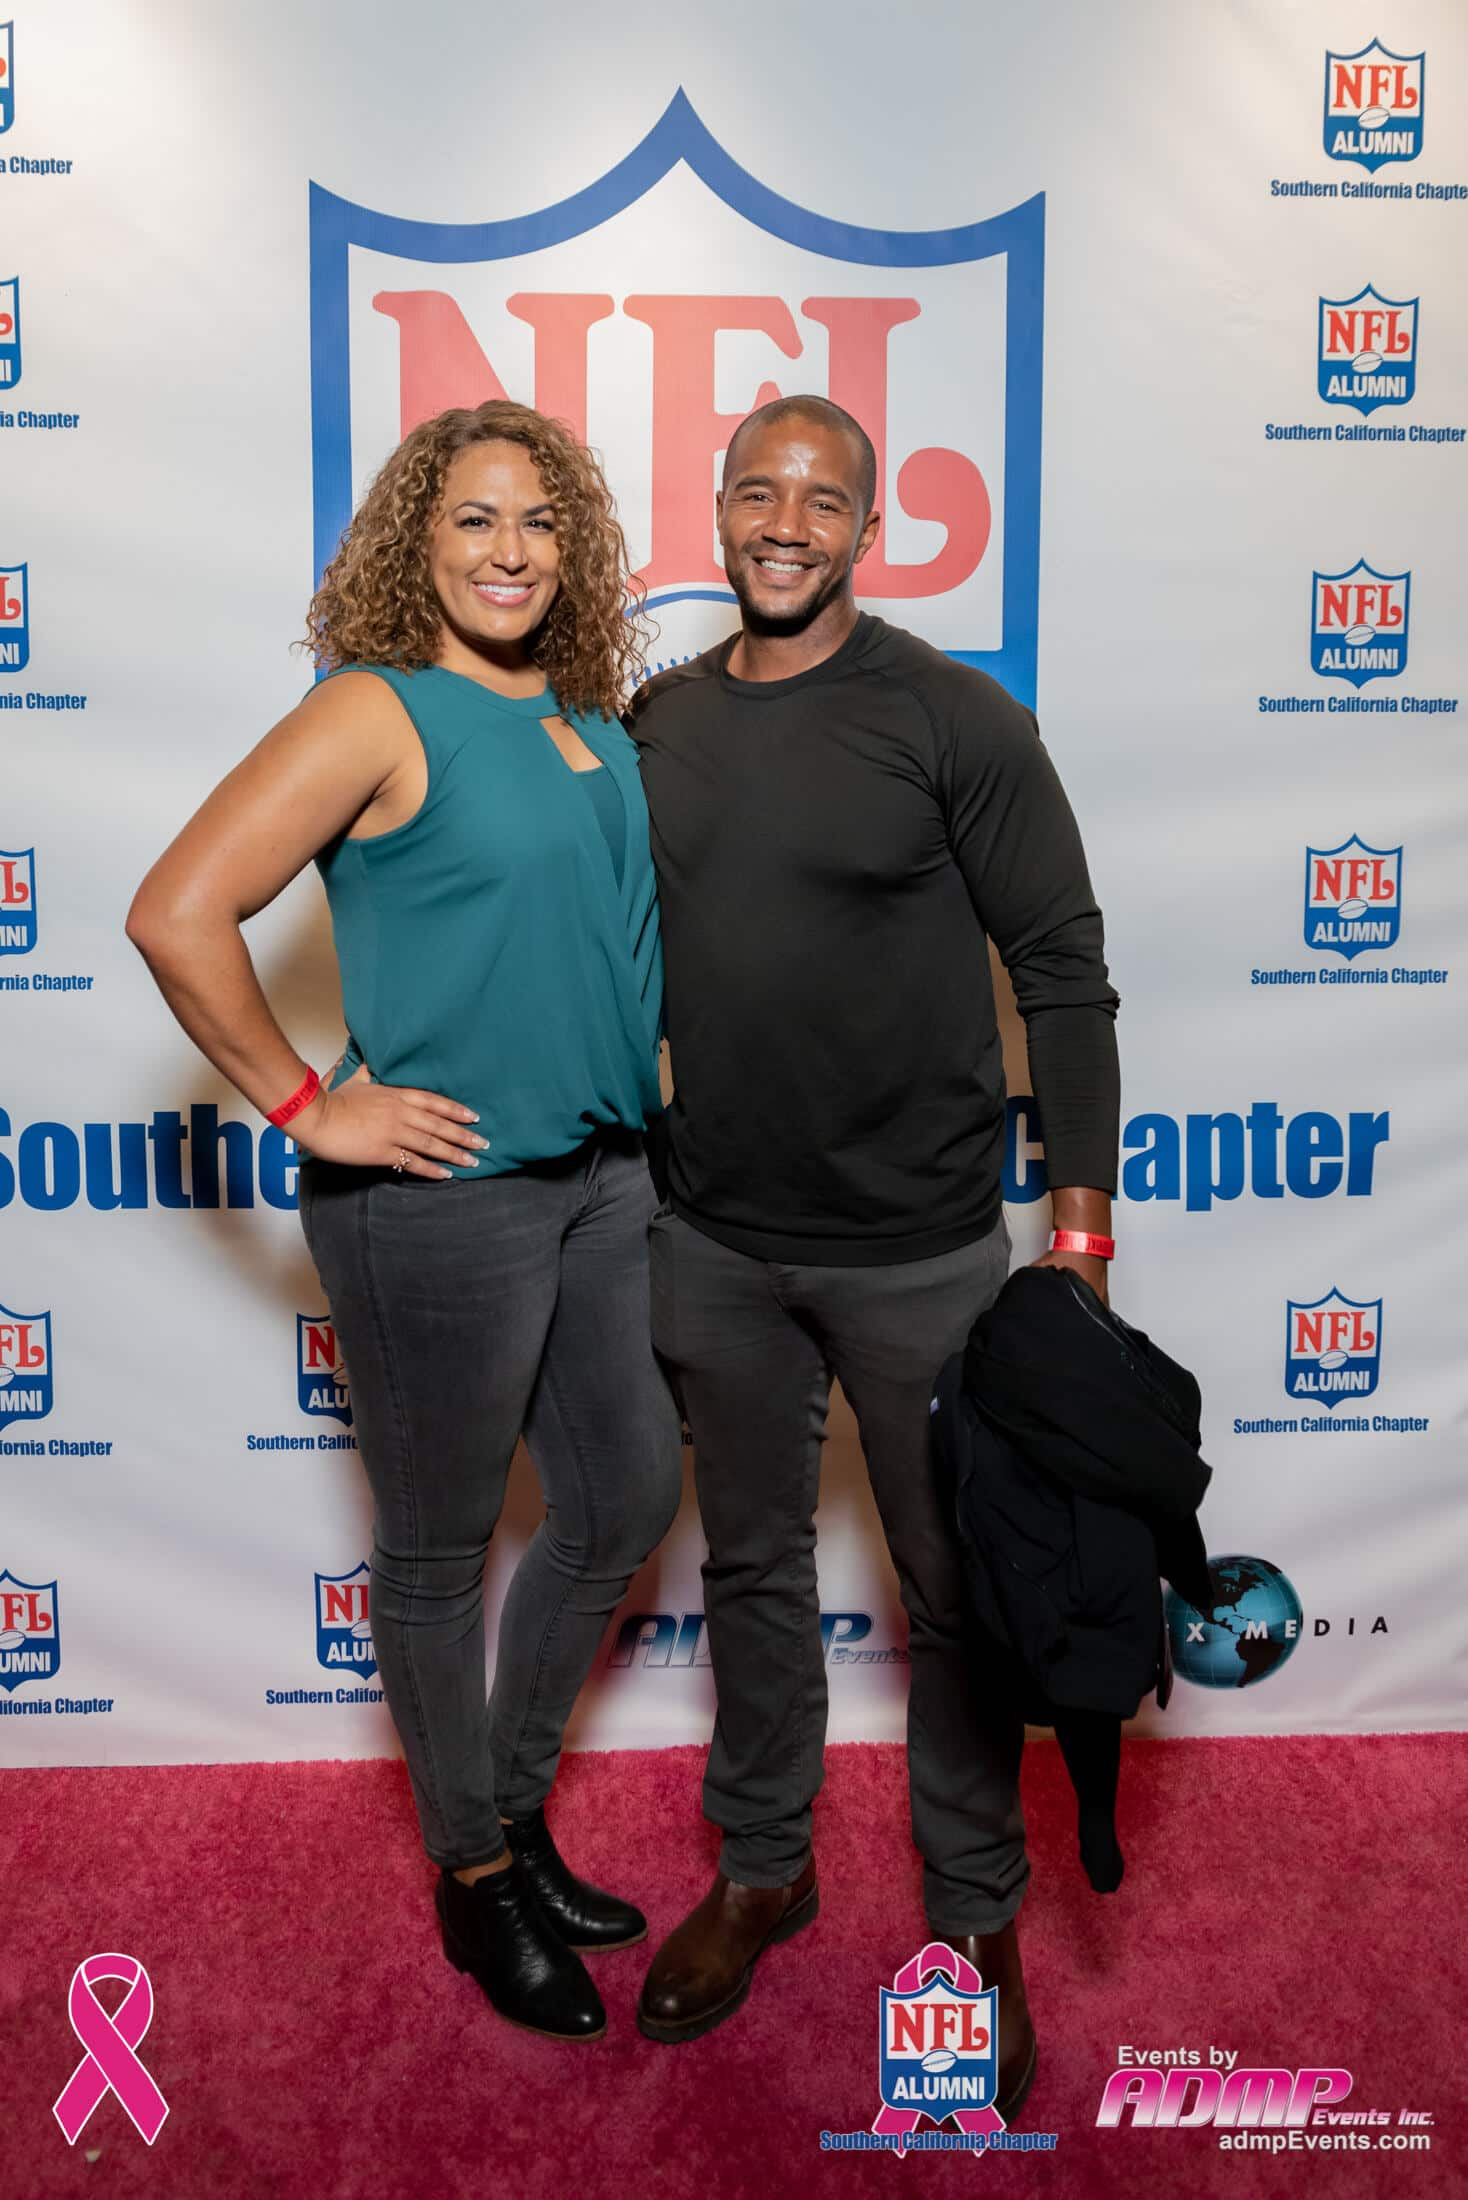 NFL Alumni SoCal Charity Event Series Breast Cancer Event 10-14-19-256